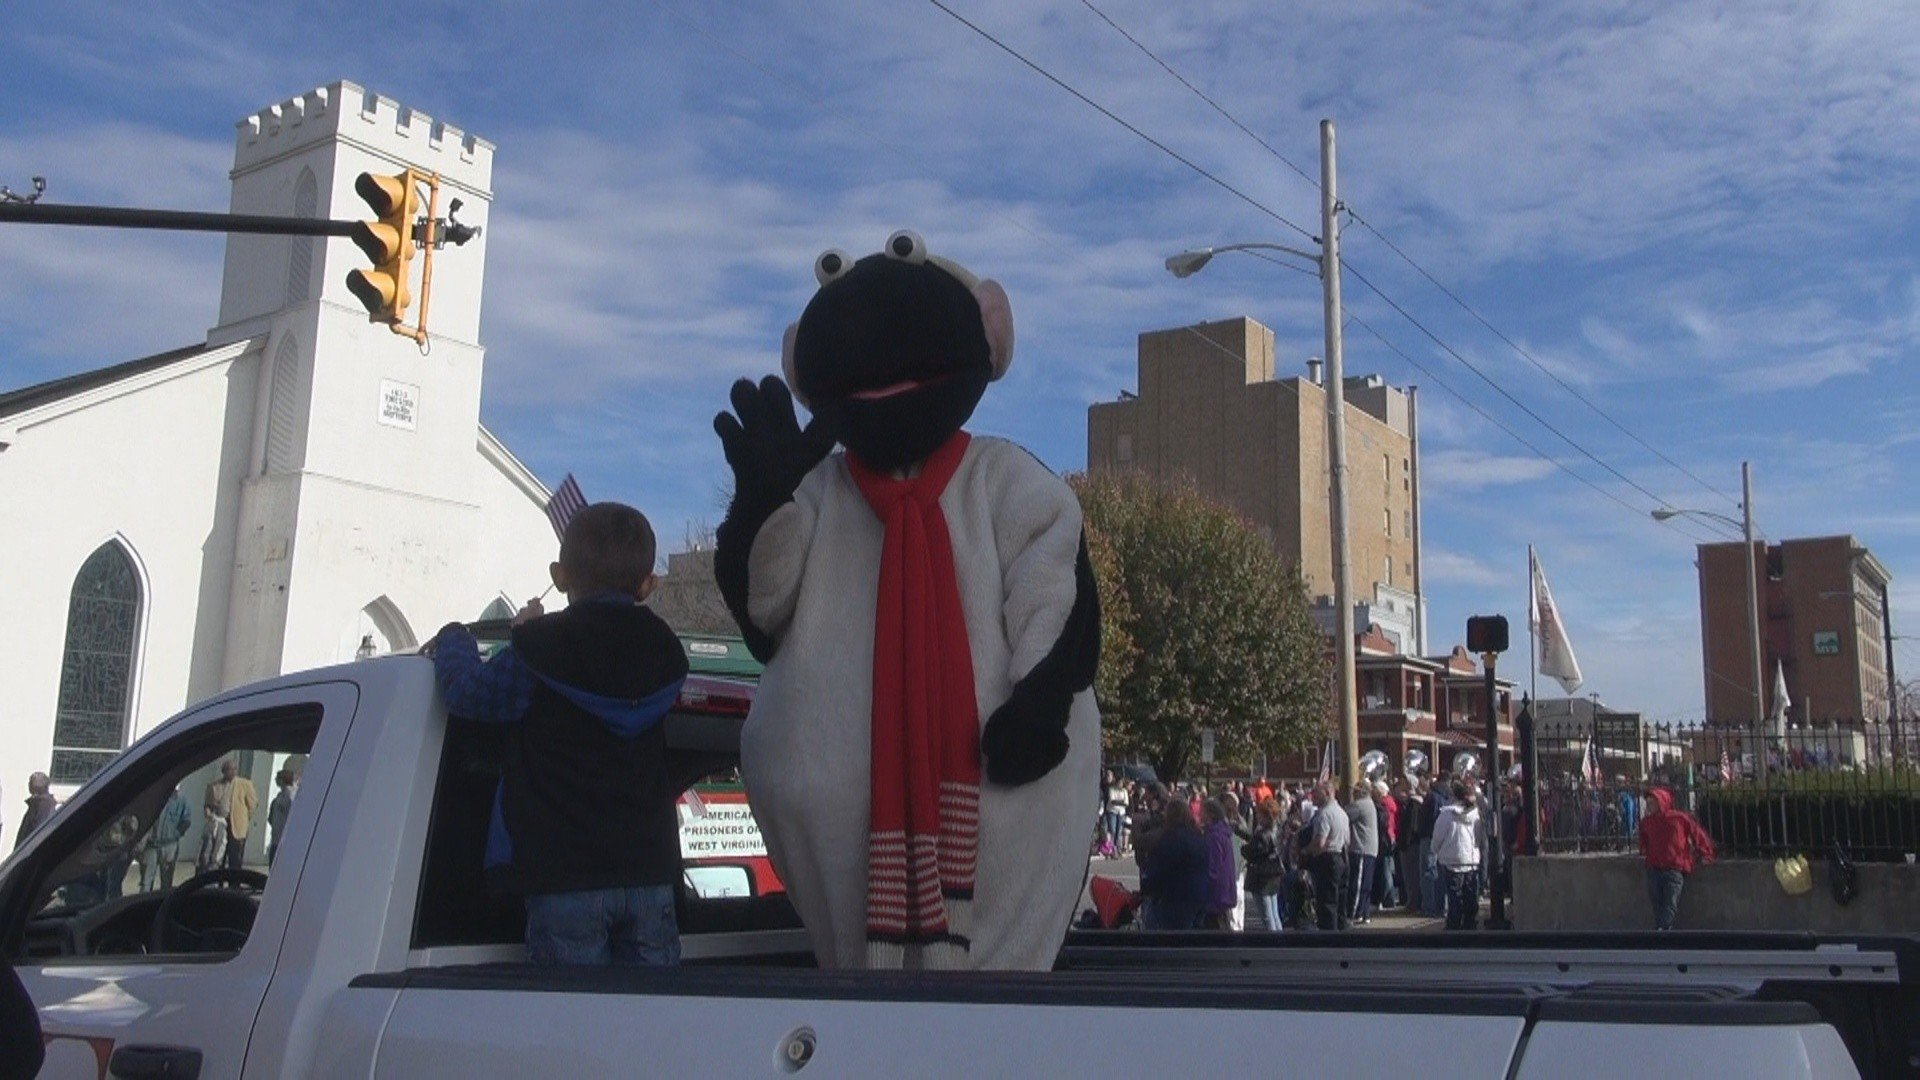 Clarksburg held its Veterans Day parade Monday afternoon.